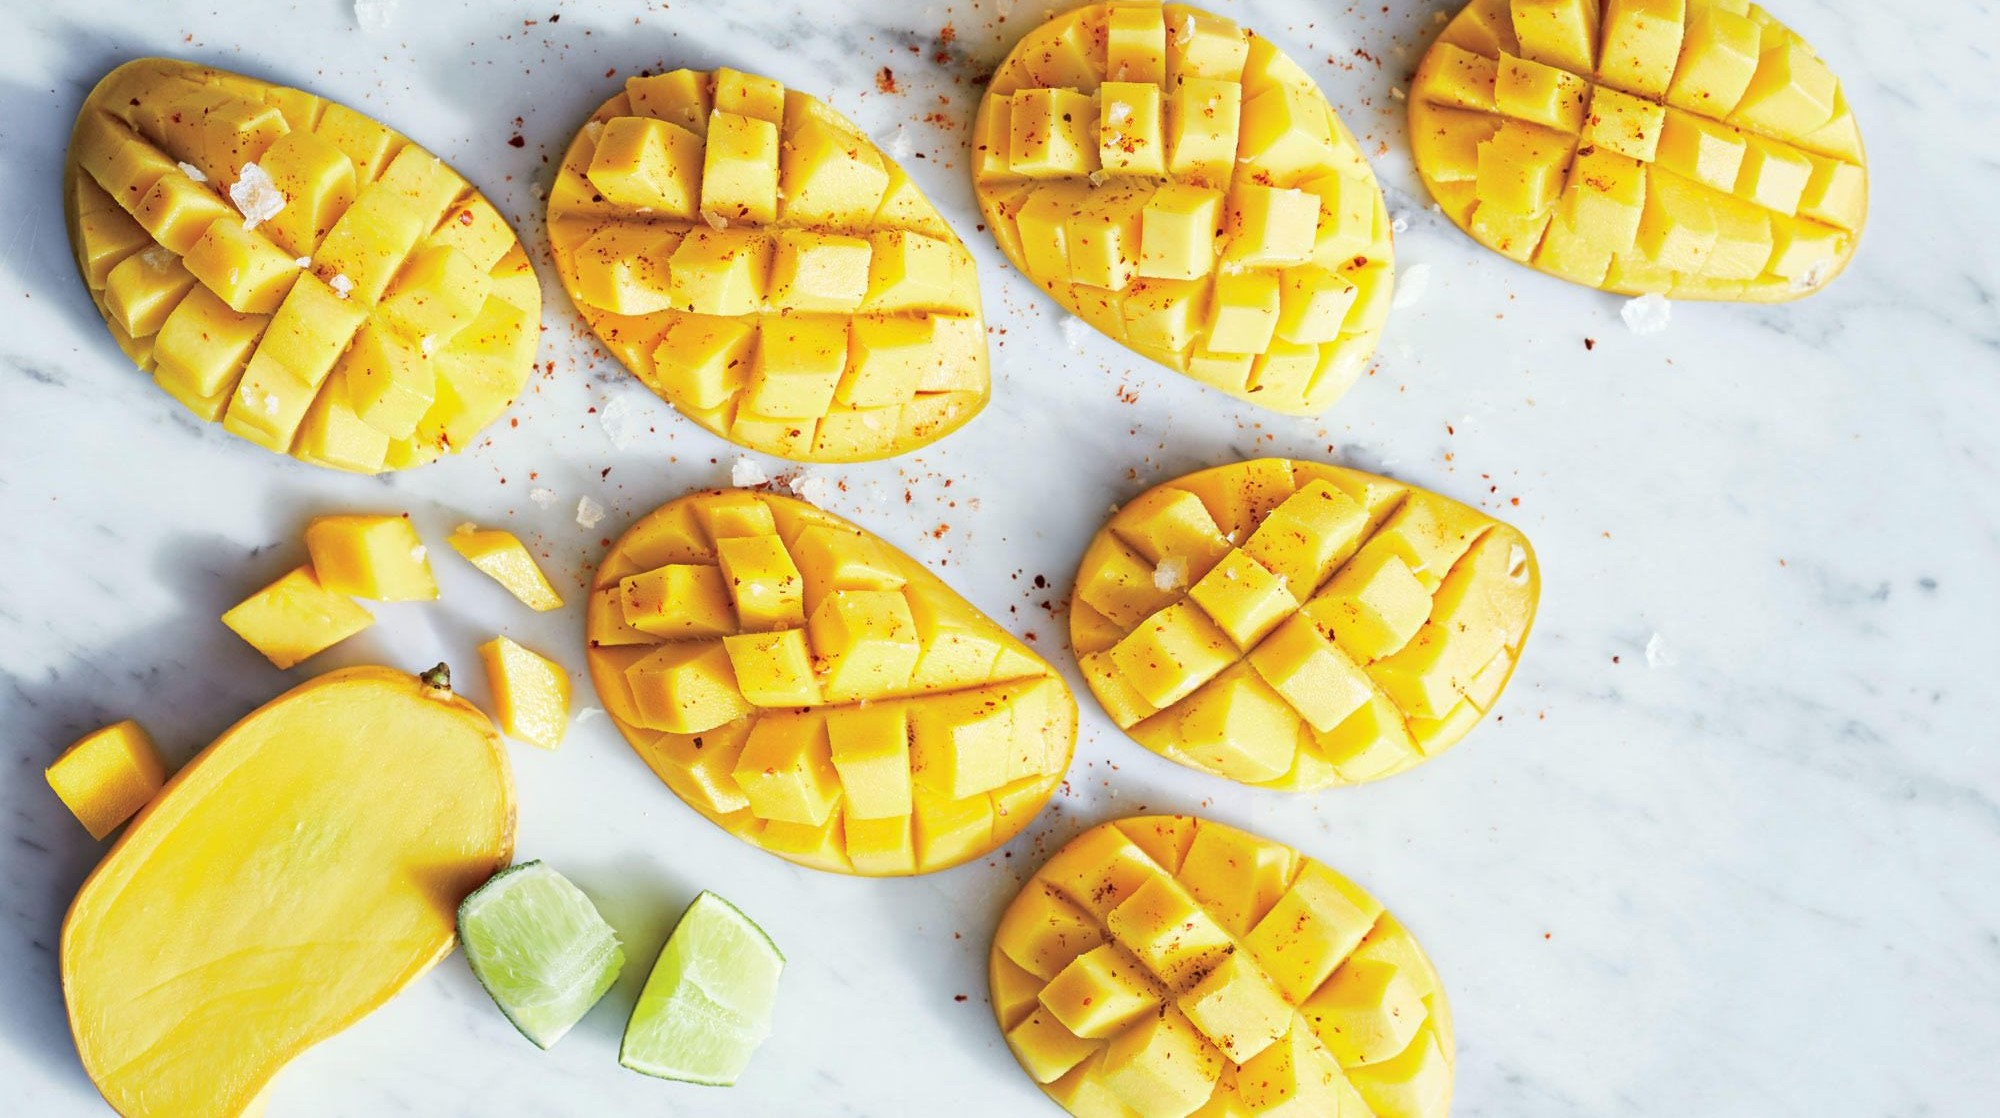 http://fruit-island.ru/images/upload/Why%20We%20Love%20Champagne%20Mangoes.jpg